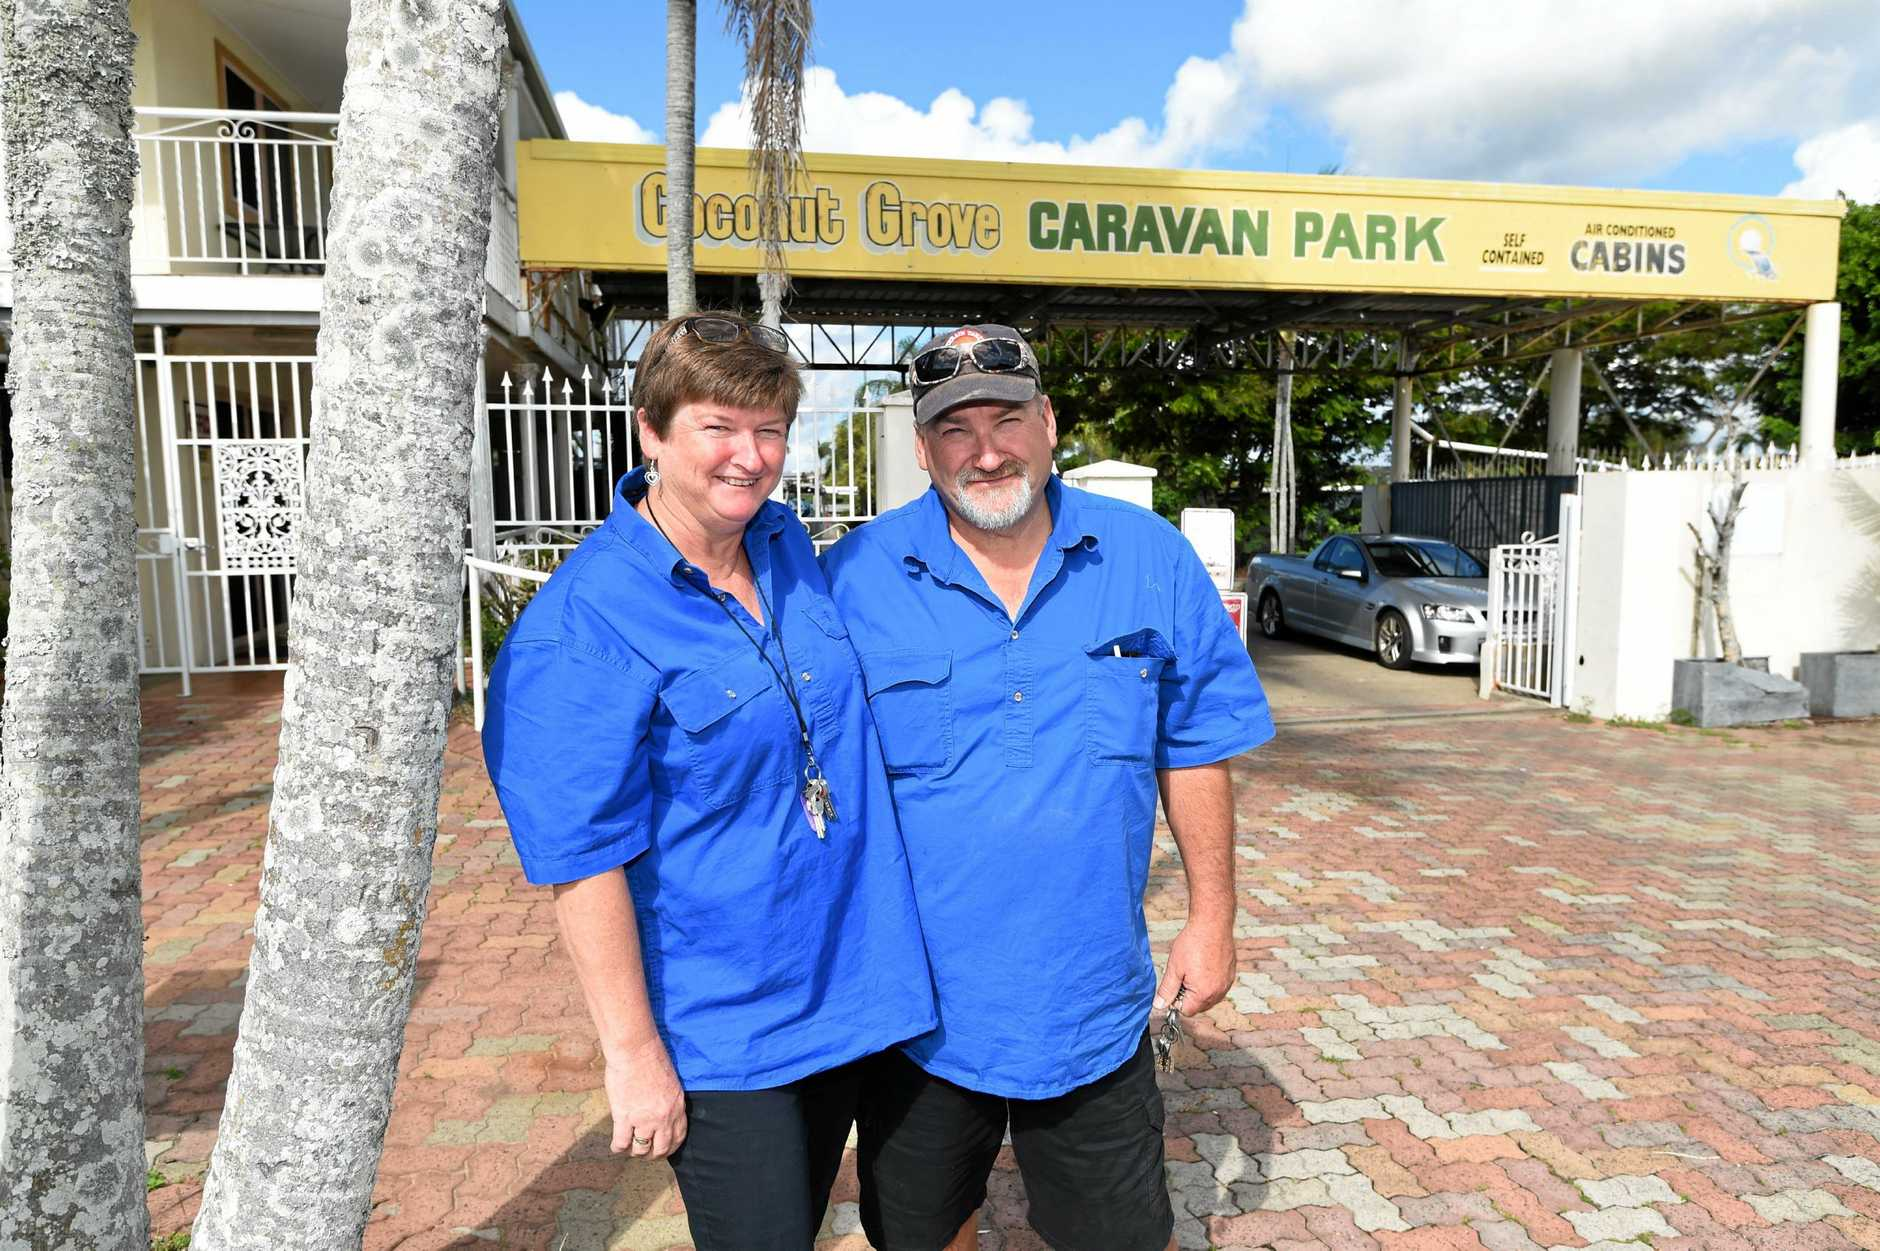 NEW CHALLENGE: The Bay Caravan Park's (formerly Coconut Grove Caravan Park) new managers Ellen and Michael.